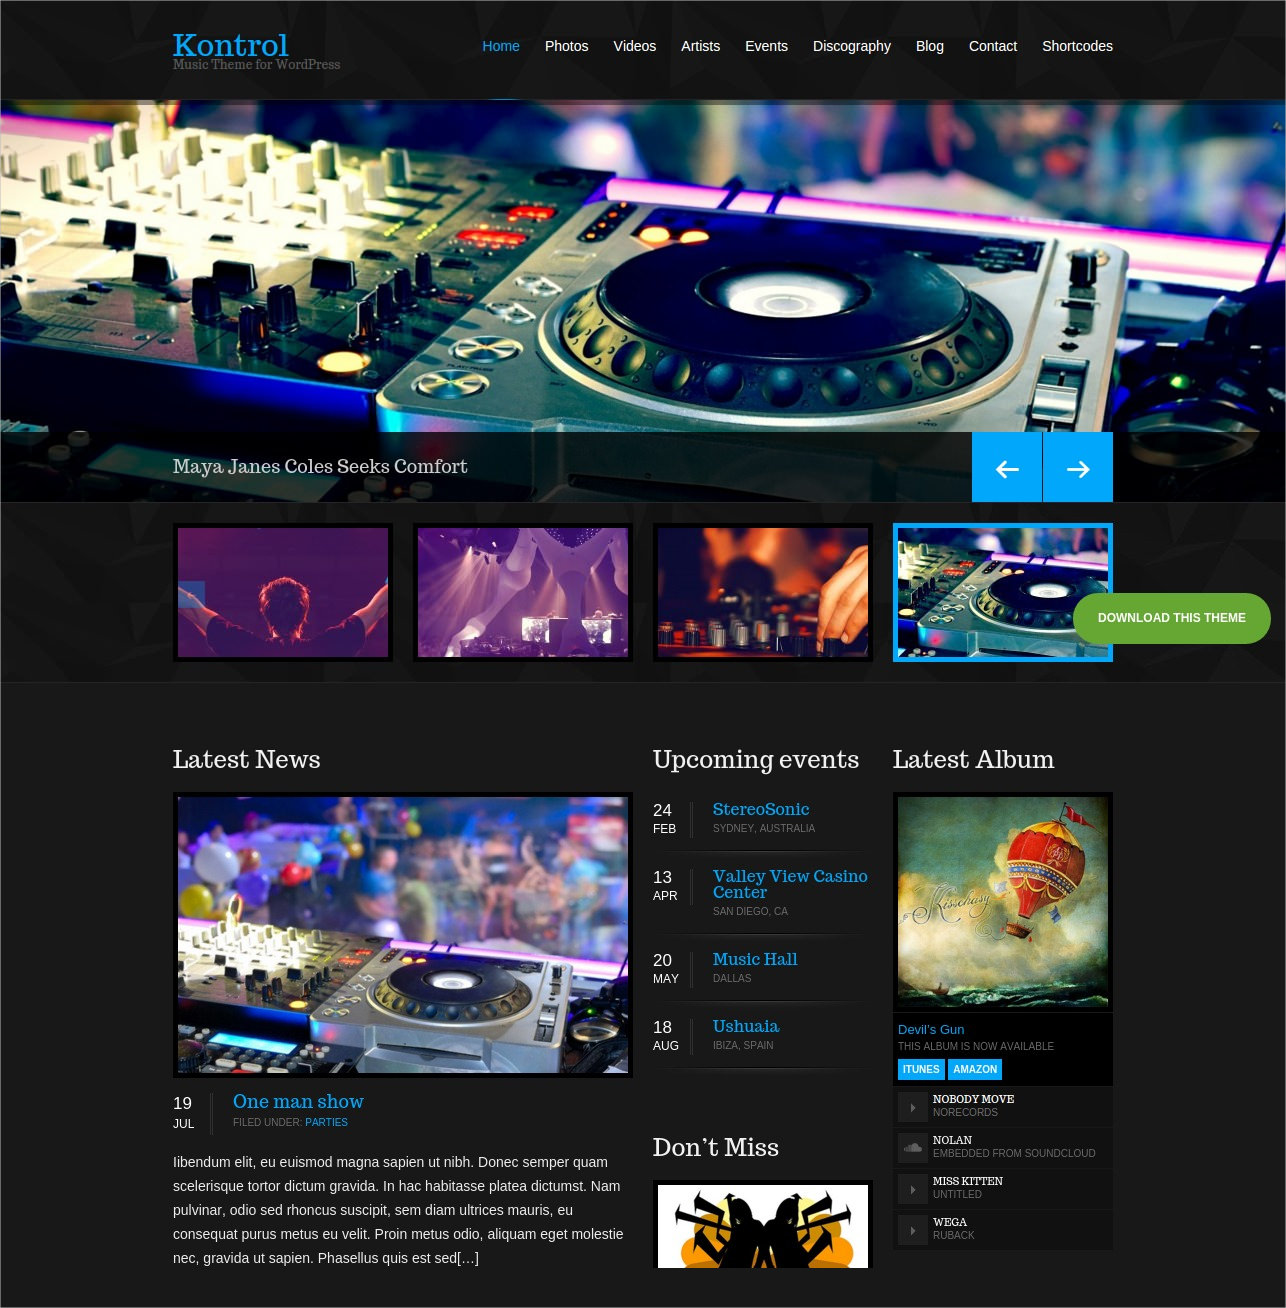 WordPress Theme for DJs & Music Artists - $49